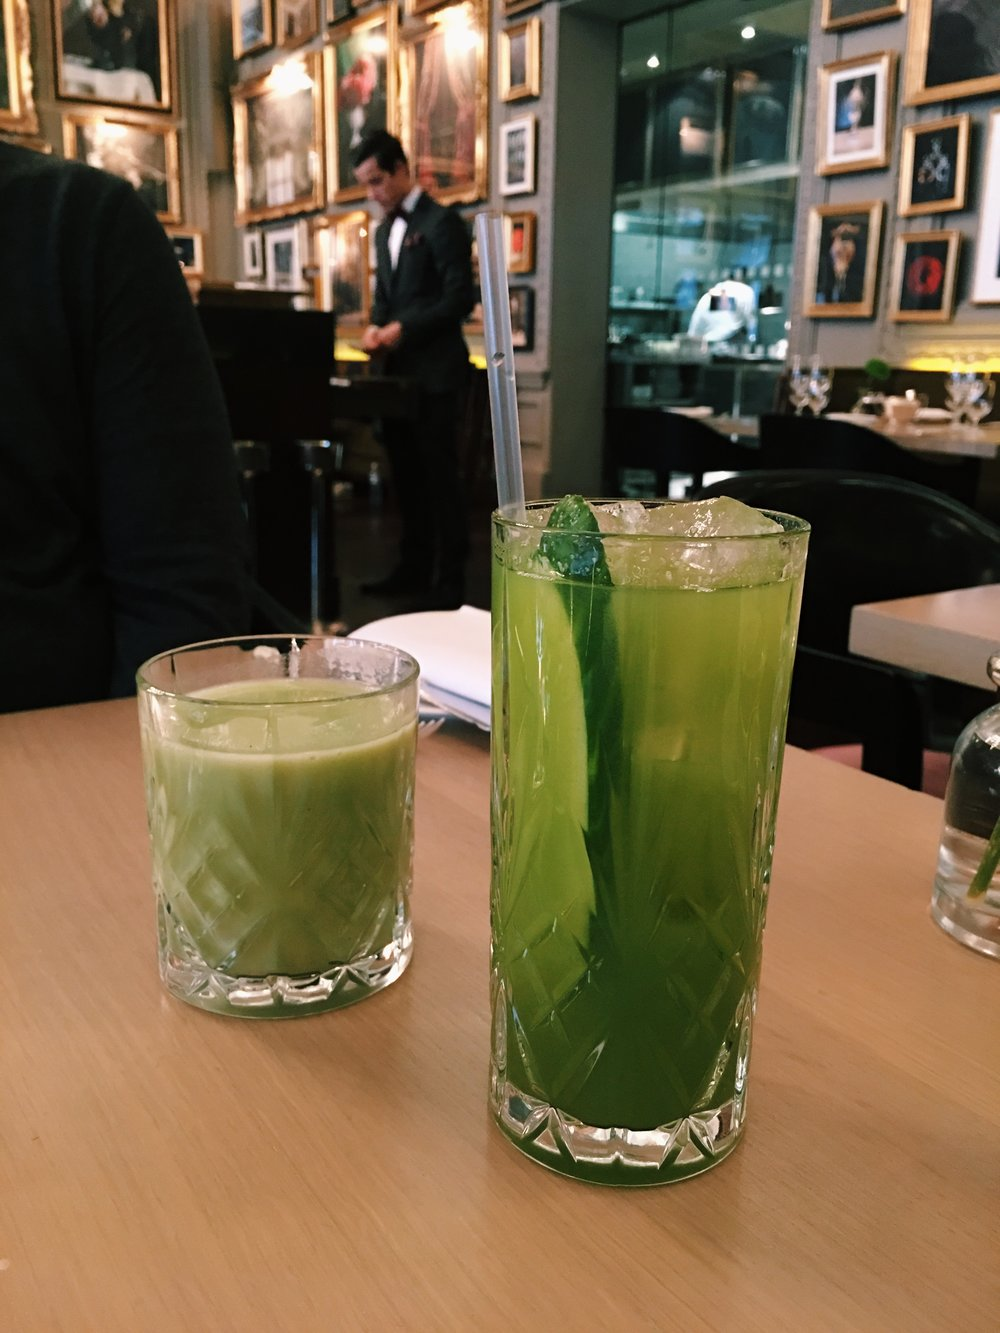 Spinach Banana Smoothie (left) and Kale Apple Cucumber Lime Juice (right), Berners Tavern, London